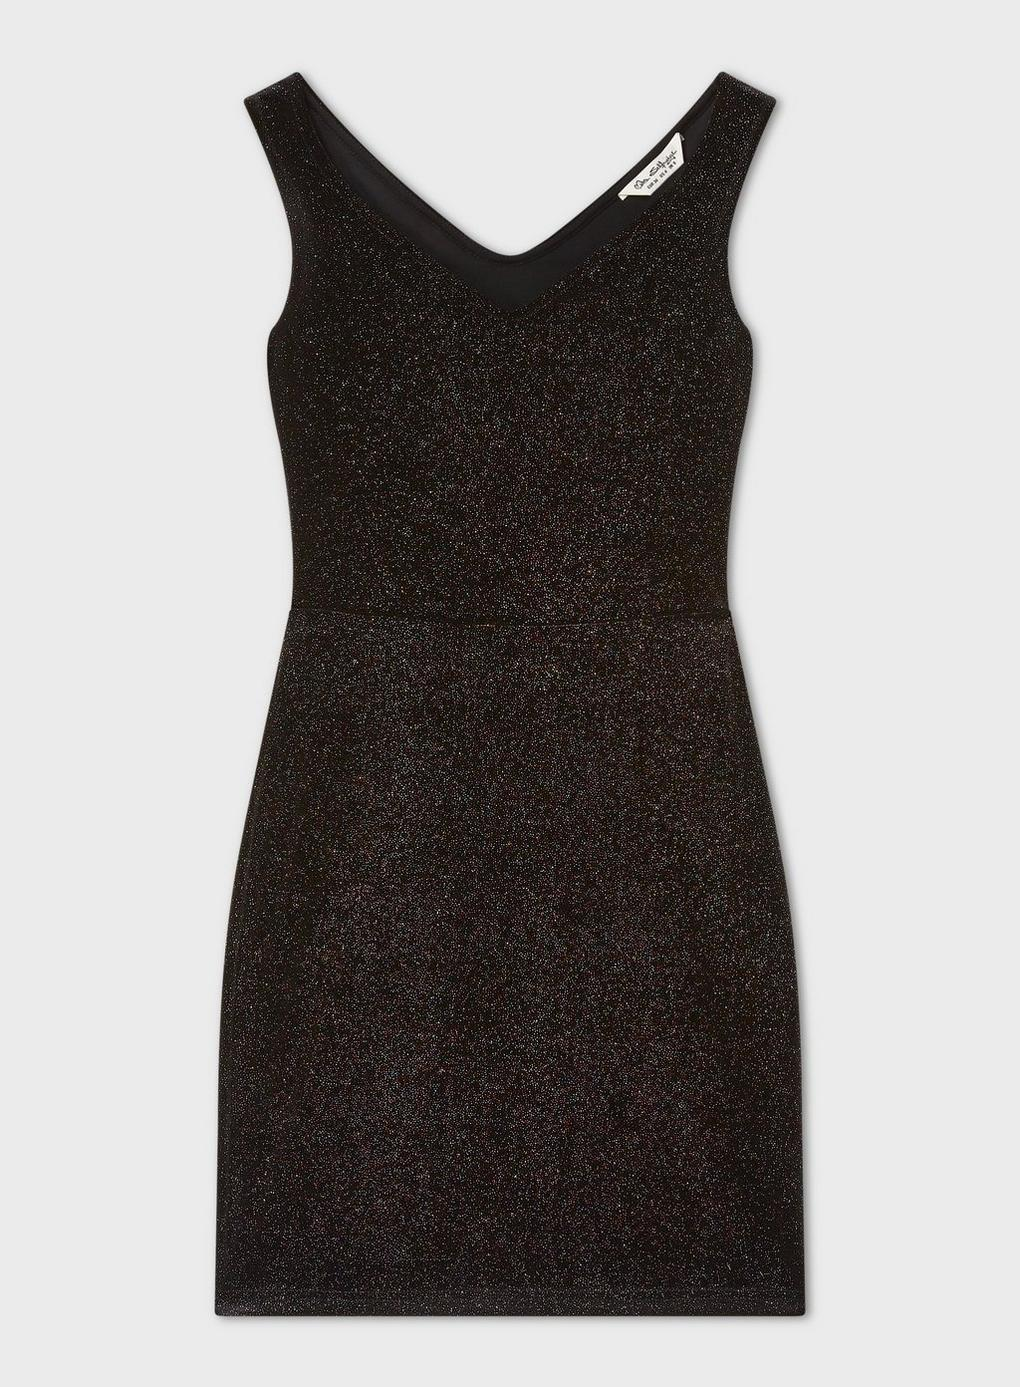 9d552b6fd5 Miss Selfridge - Black Glitter Bardot Dress - Lyst. View fullscreen